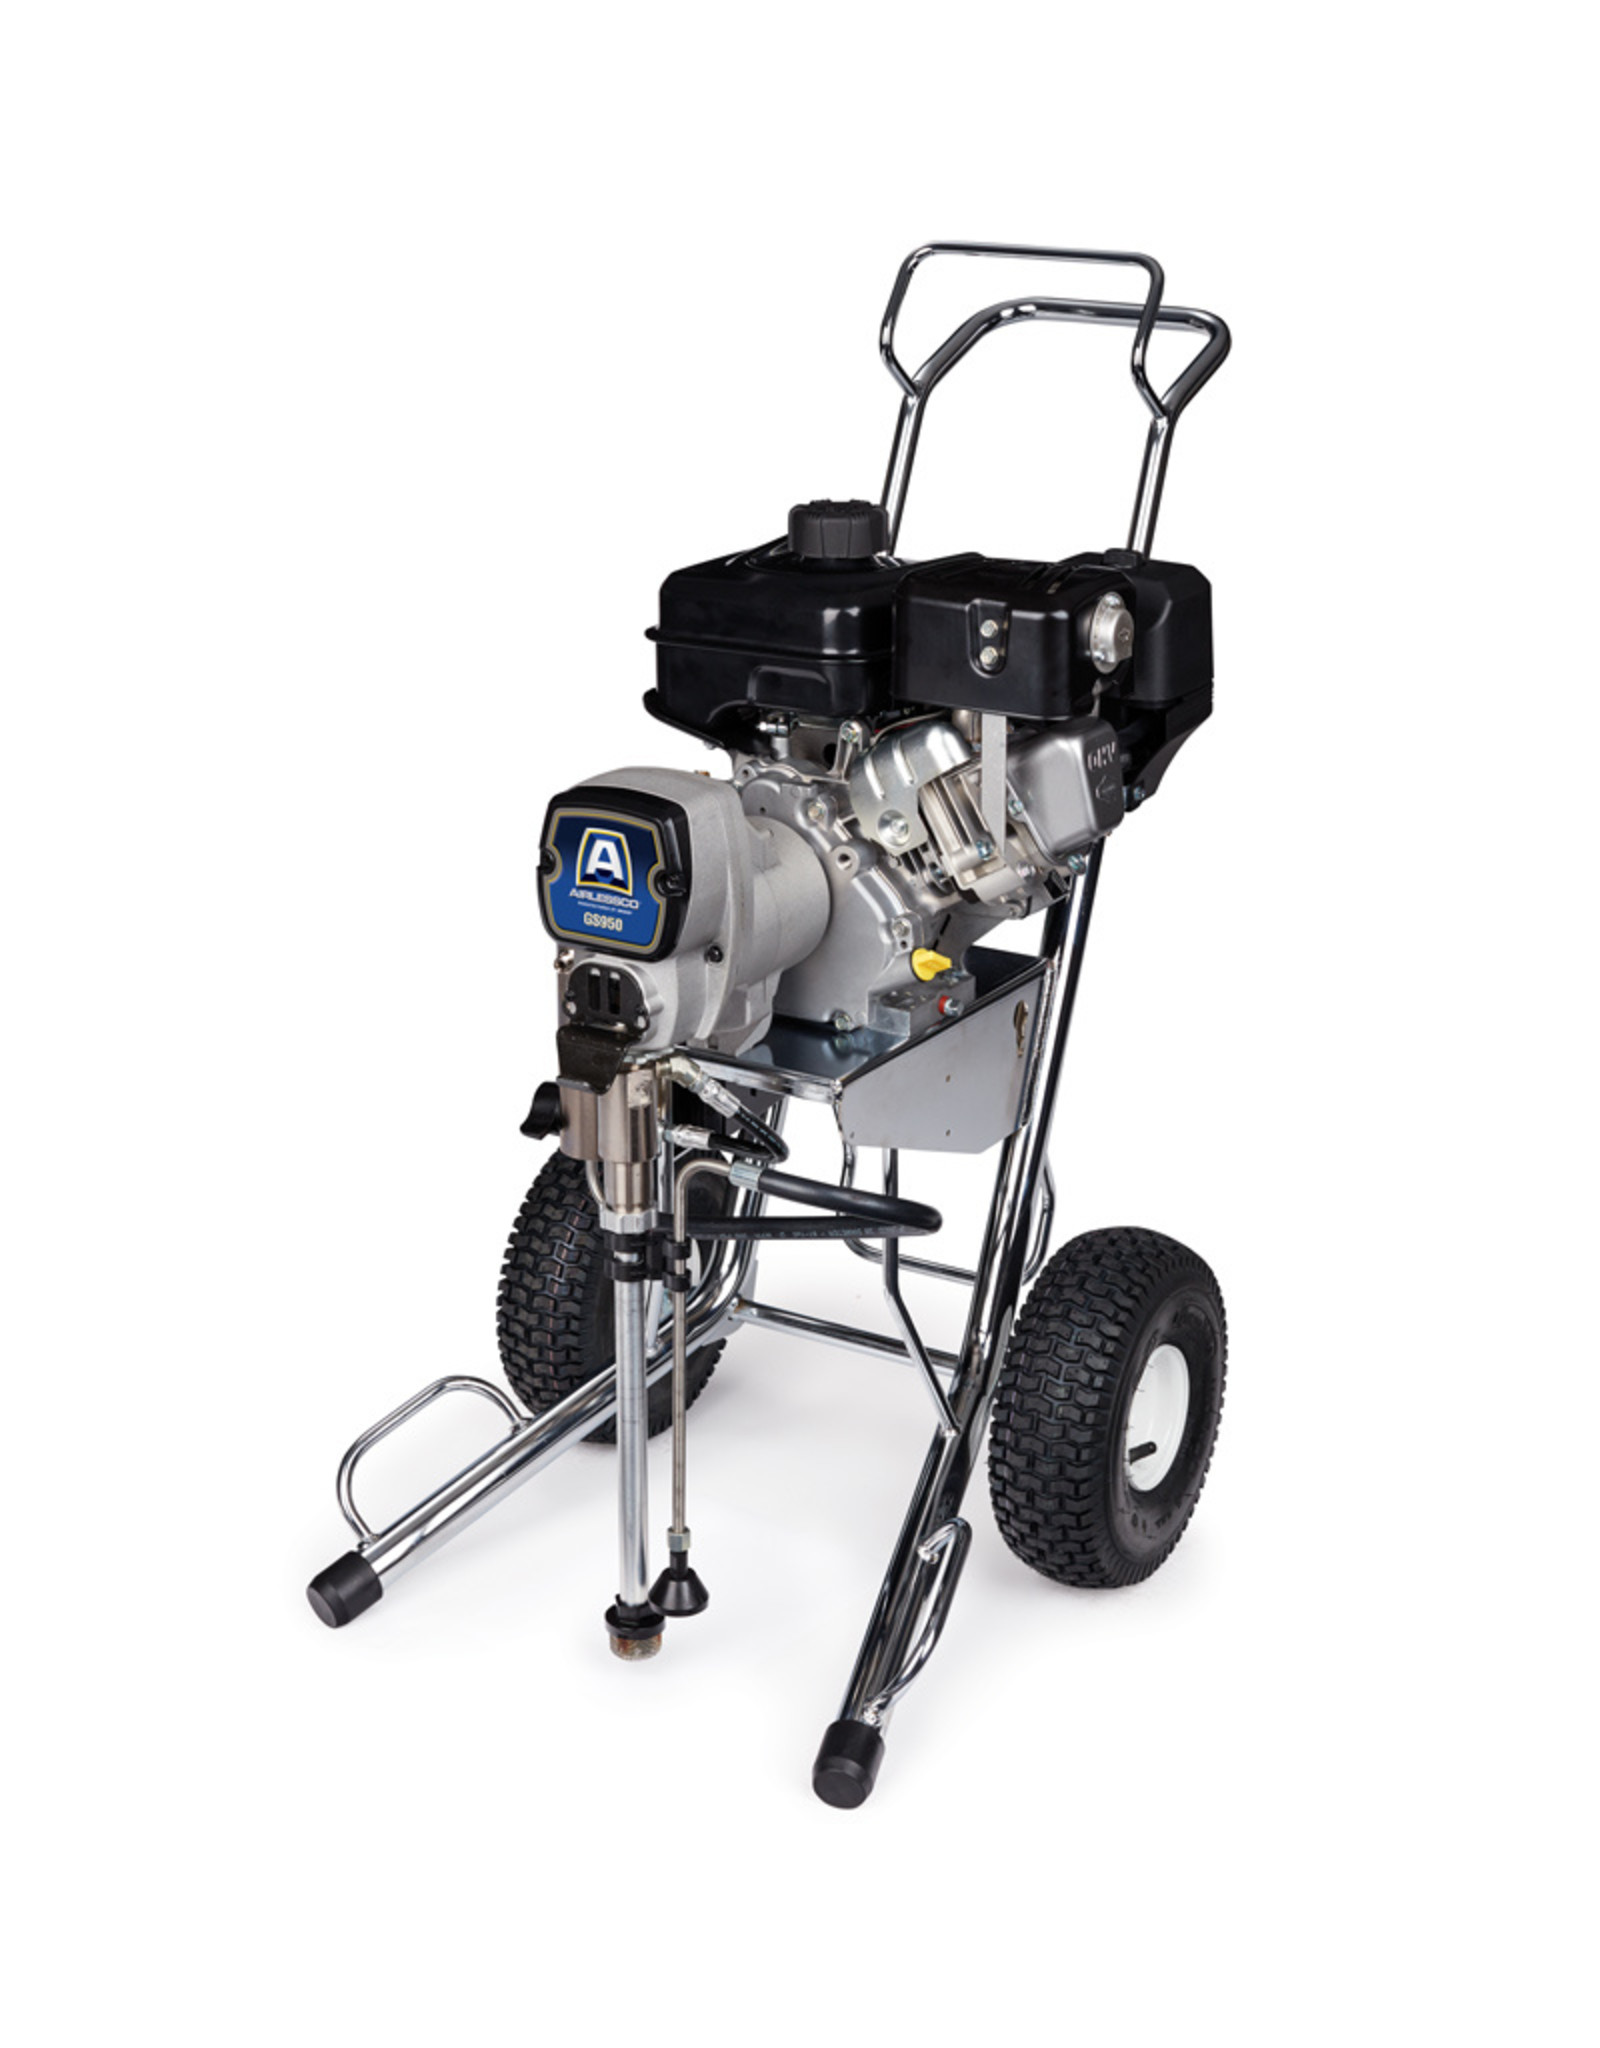 Airlessco By Graco 17M141 GS950 Graco HiBoy Gas Airless Paint Sprayer by Graco